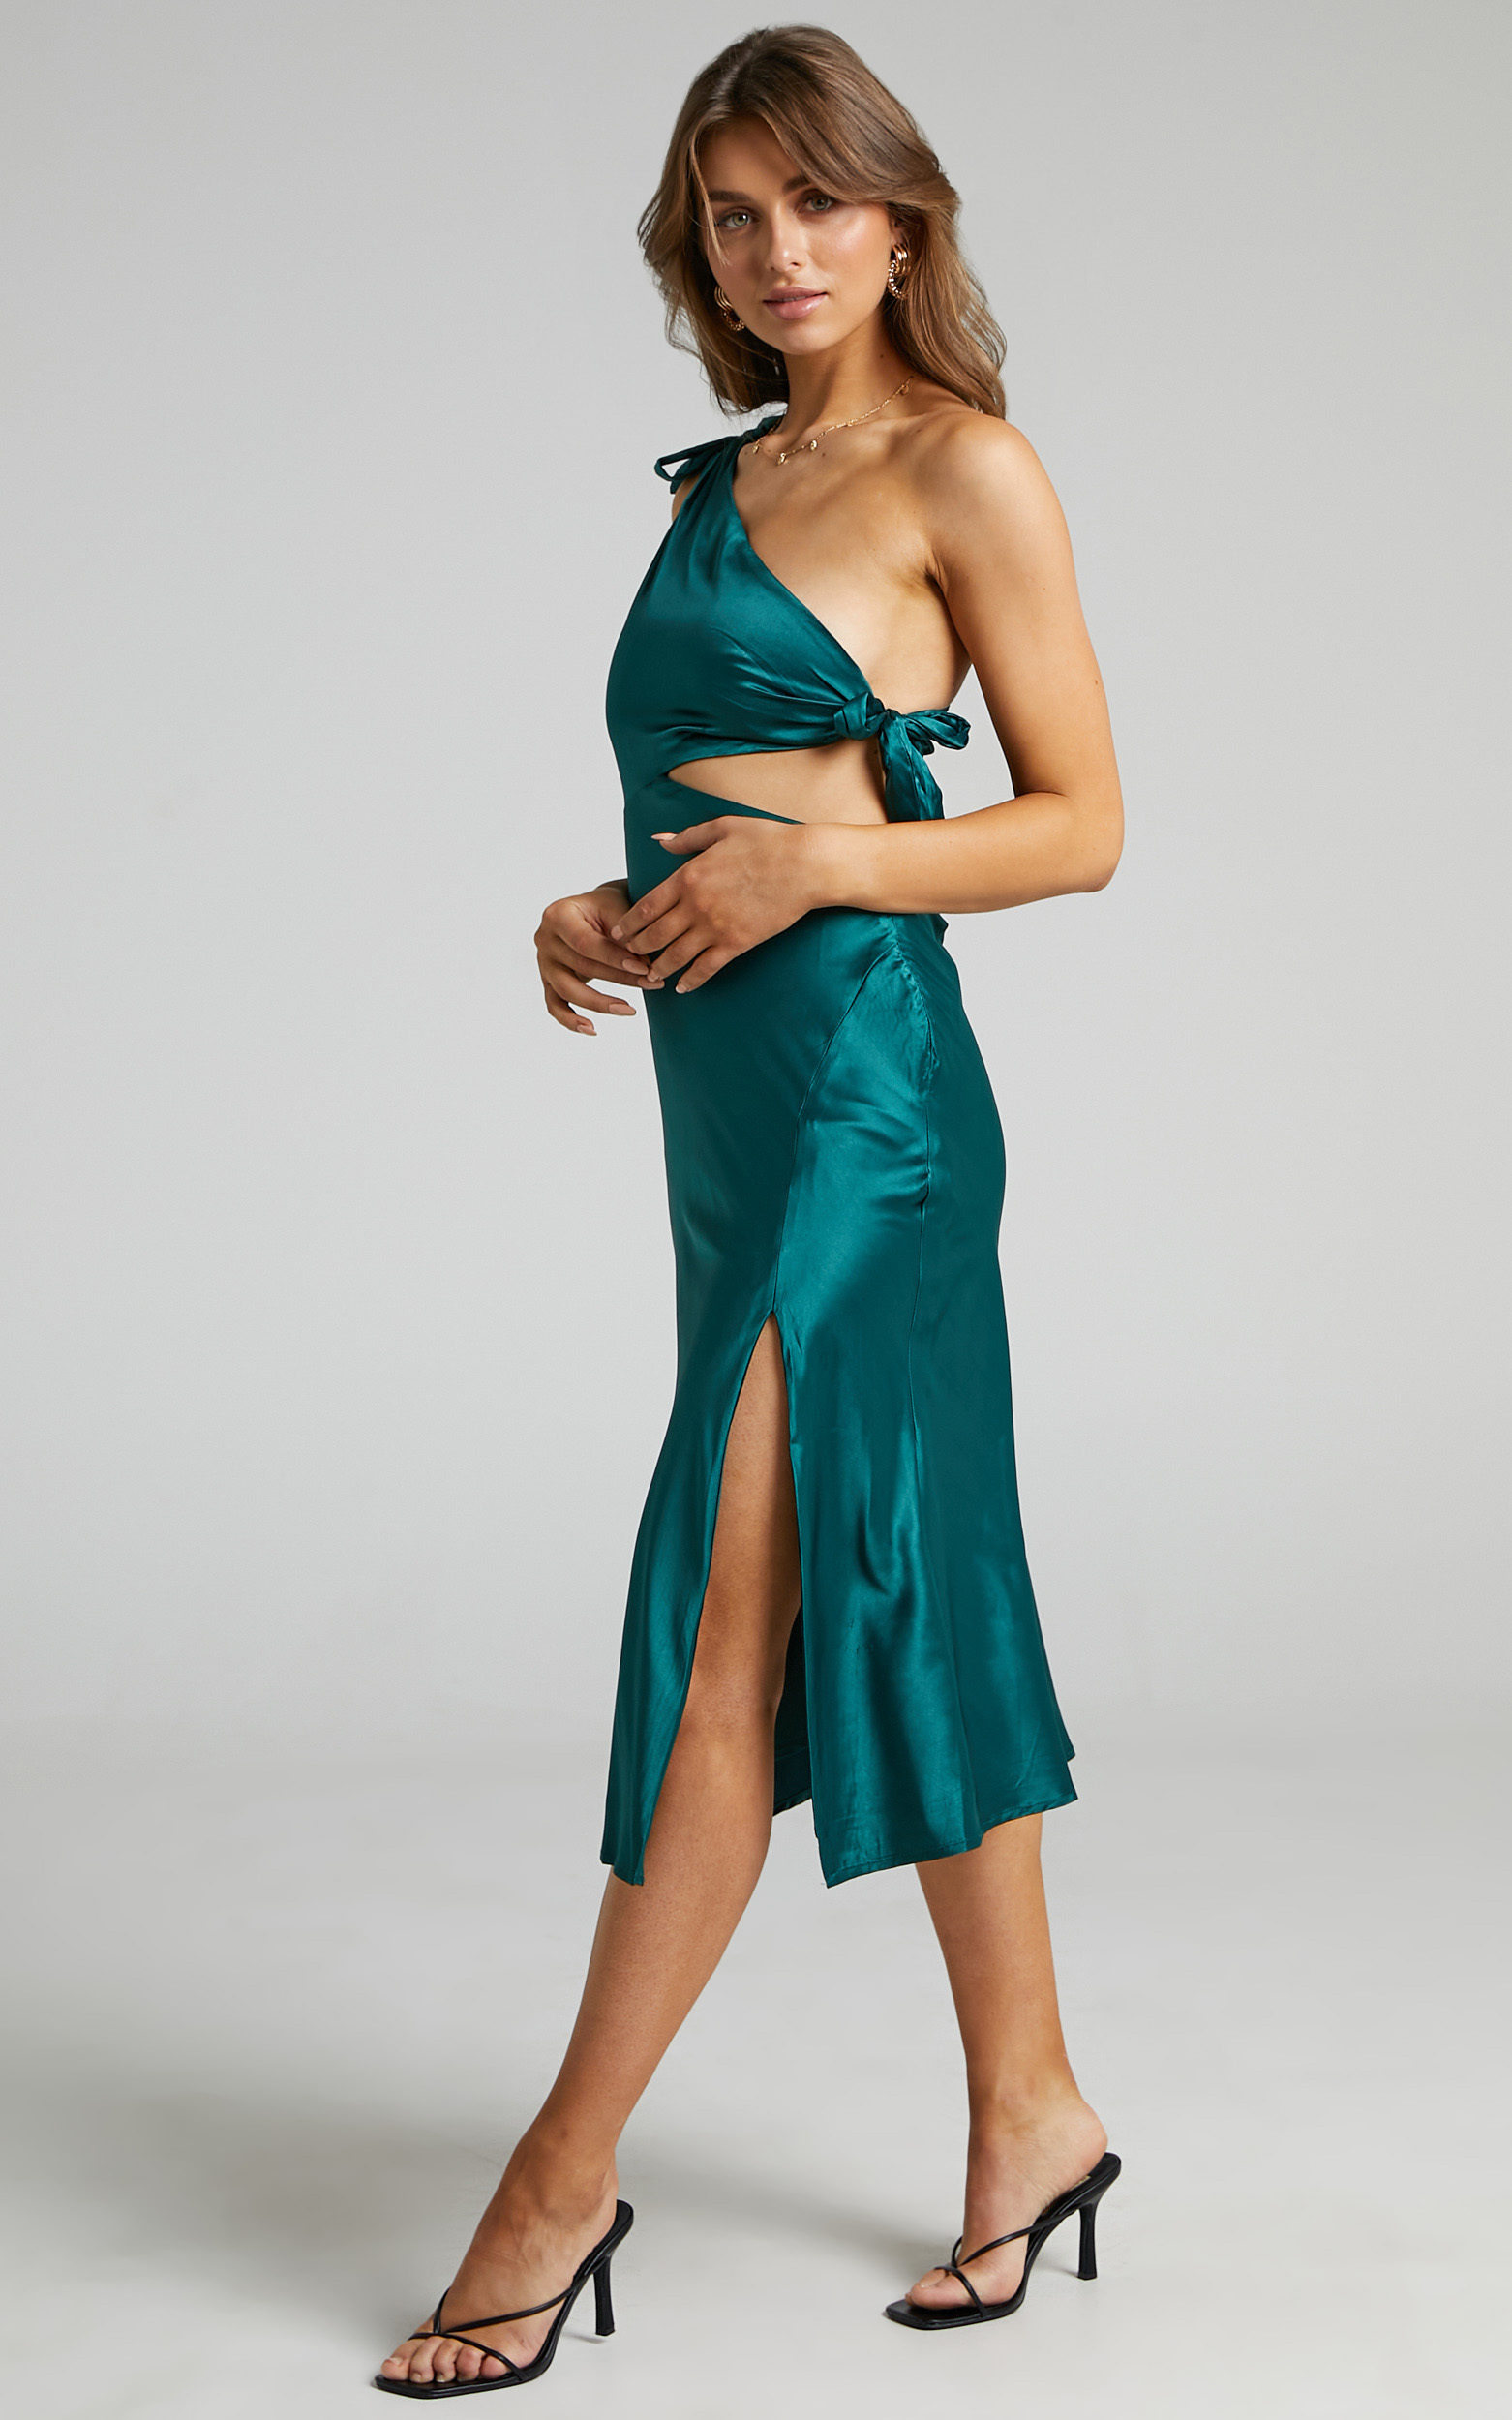 Glaucus Dress in Emerald Satin - 06, GRN1, hi-res image number null